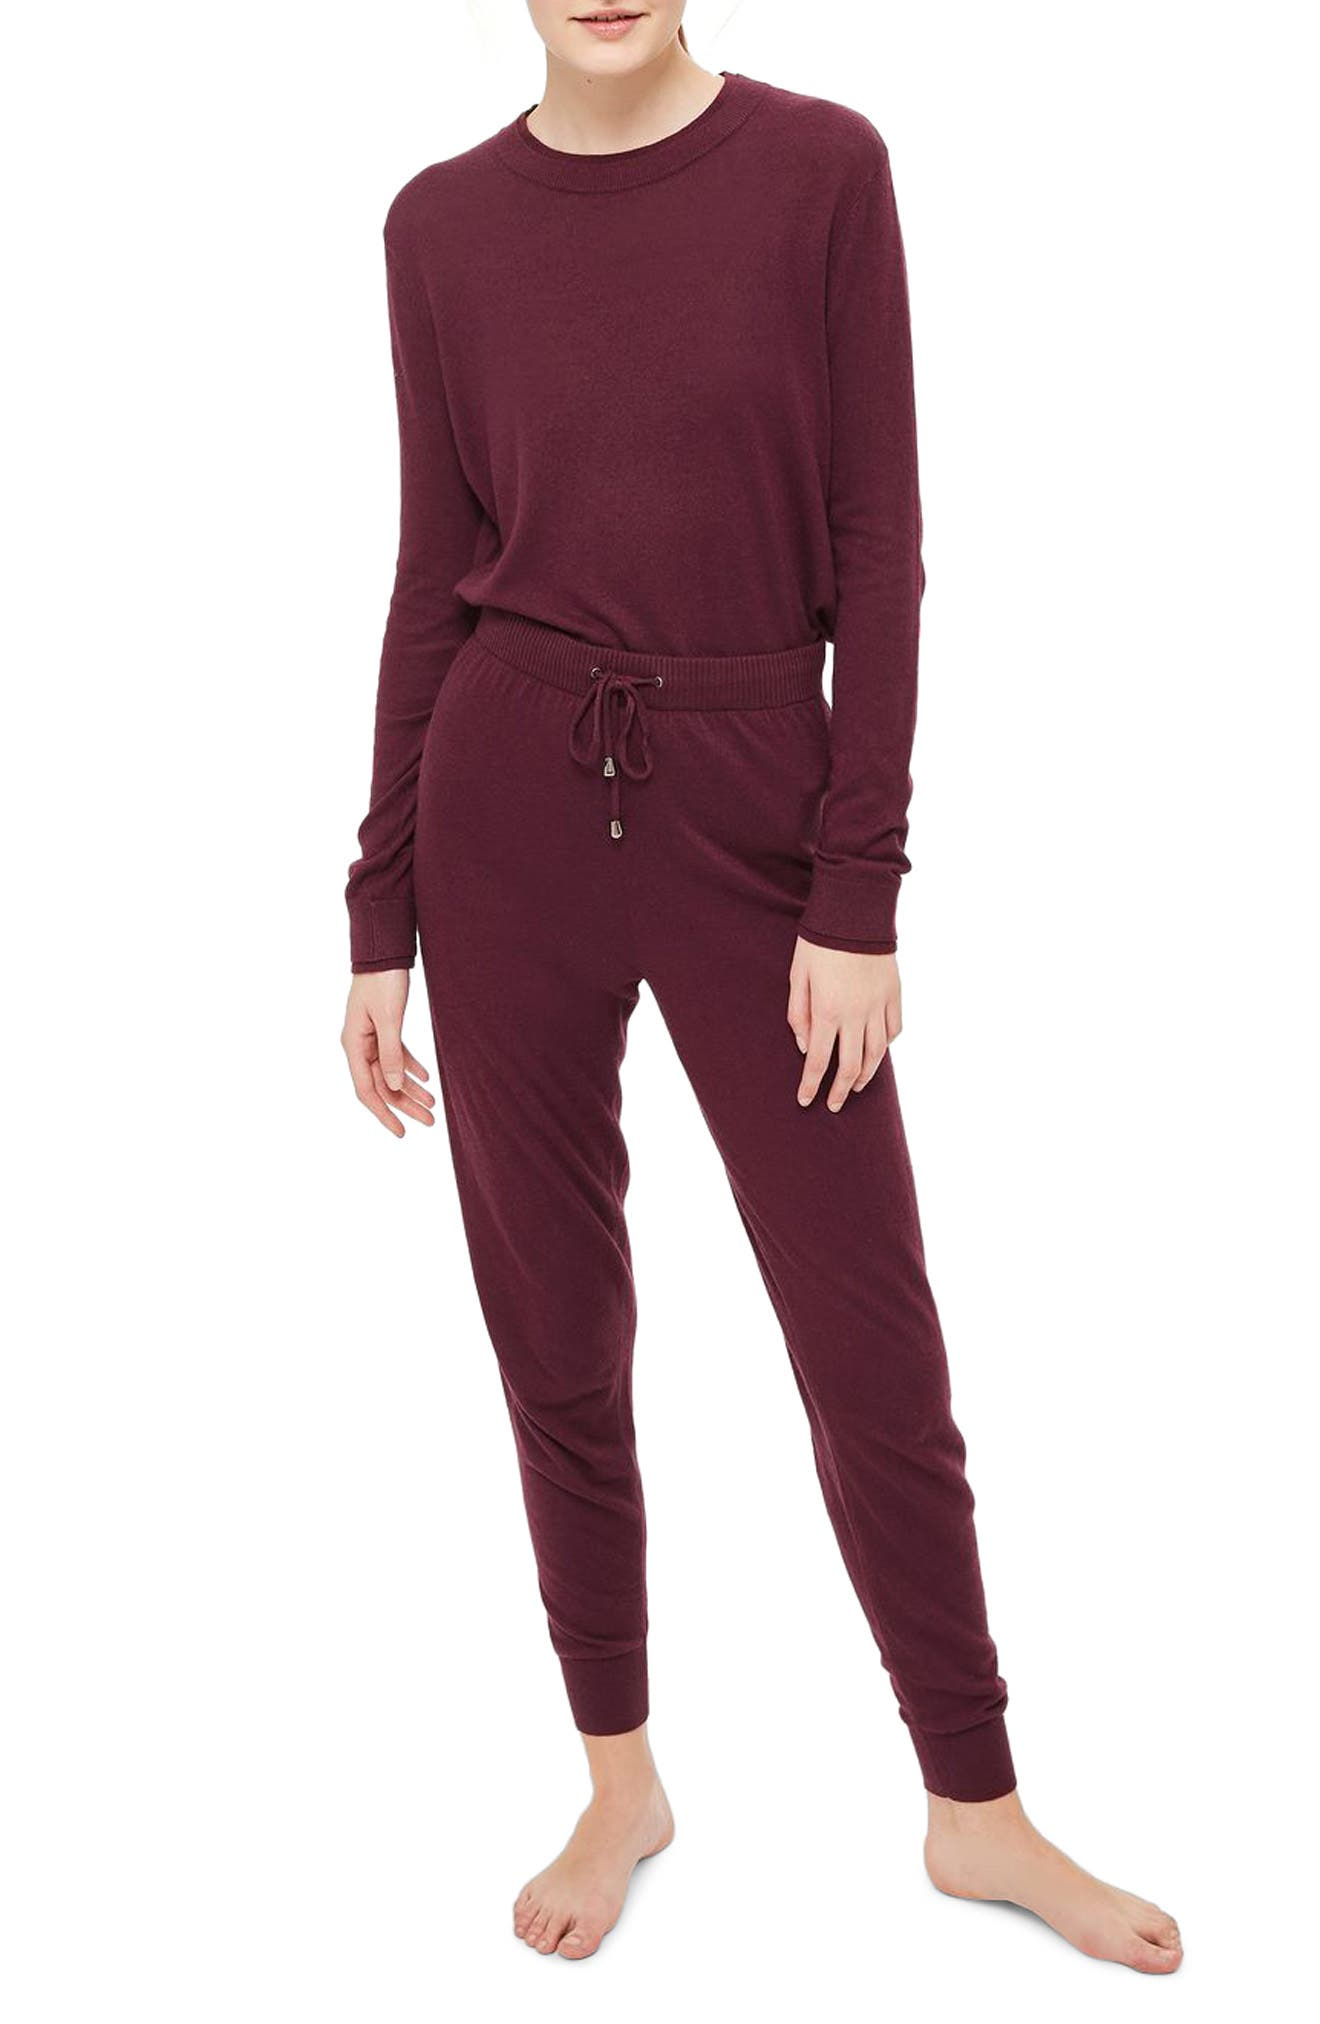 Jogger Lounge Pants,                         Main,                         color, Berry Red